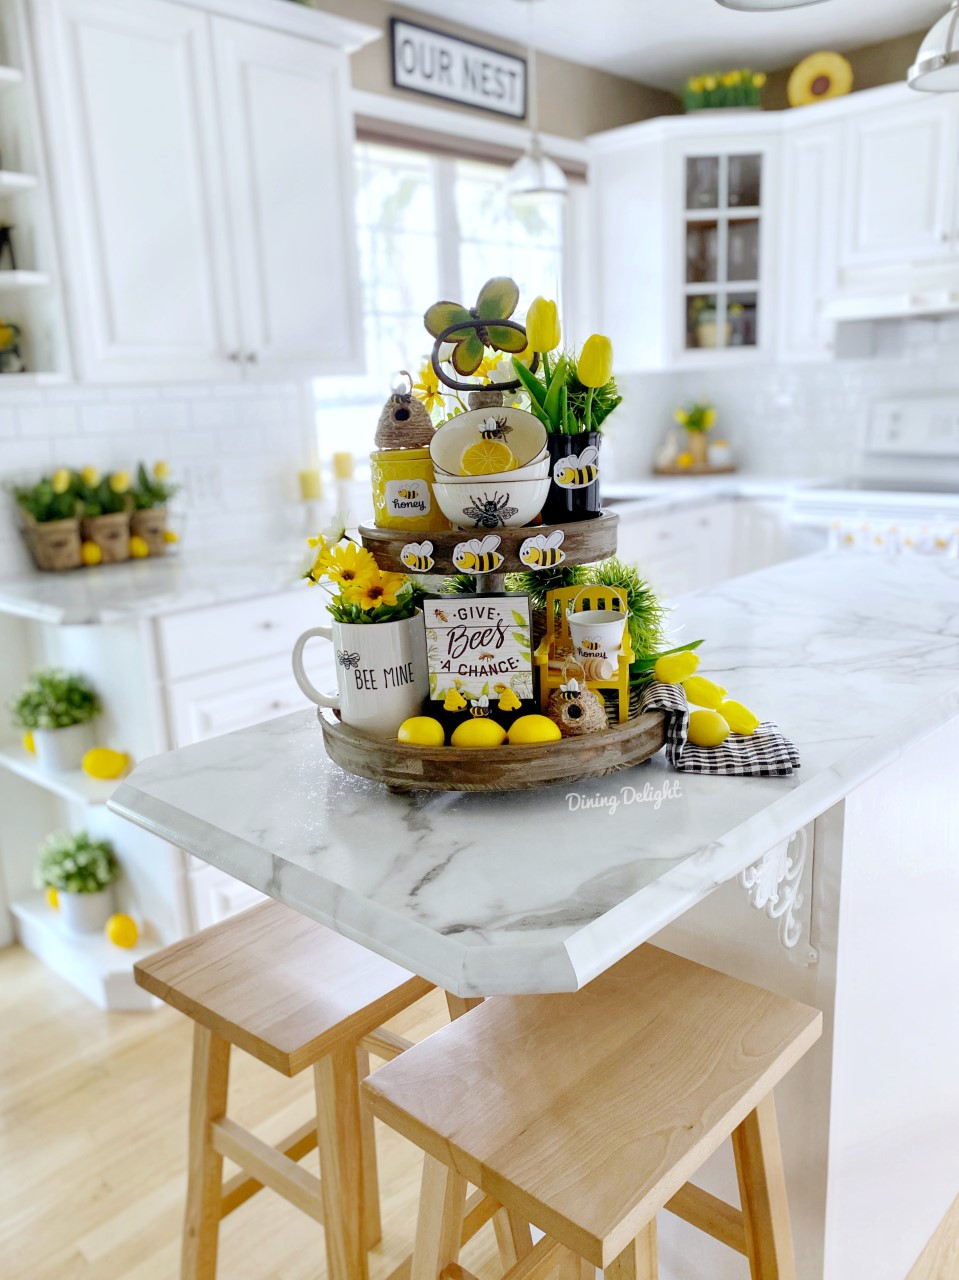 Dining Delight Bee Themed Tiered Tray Decor